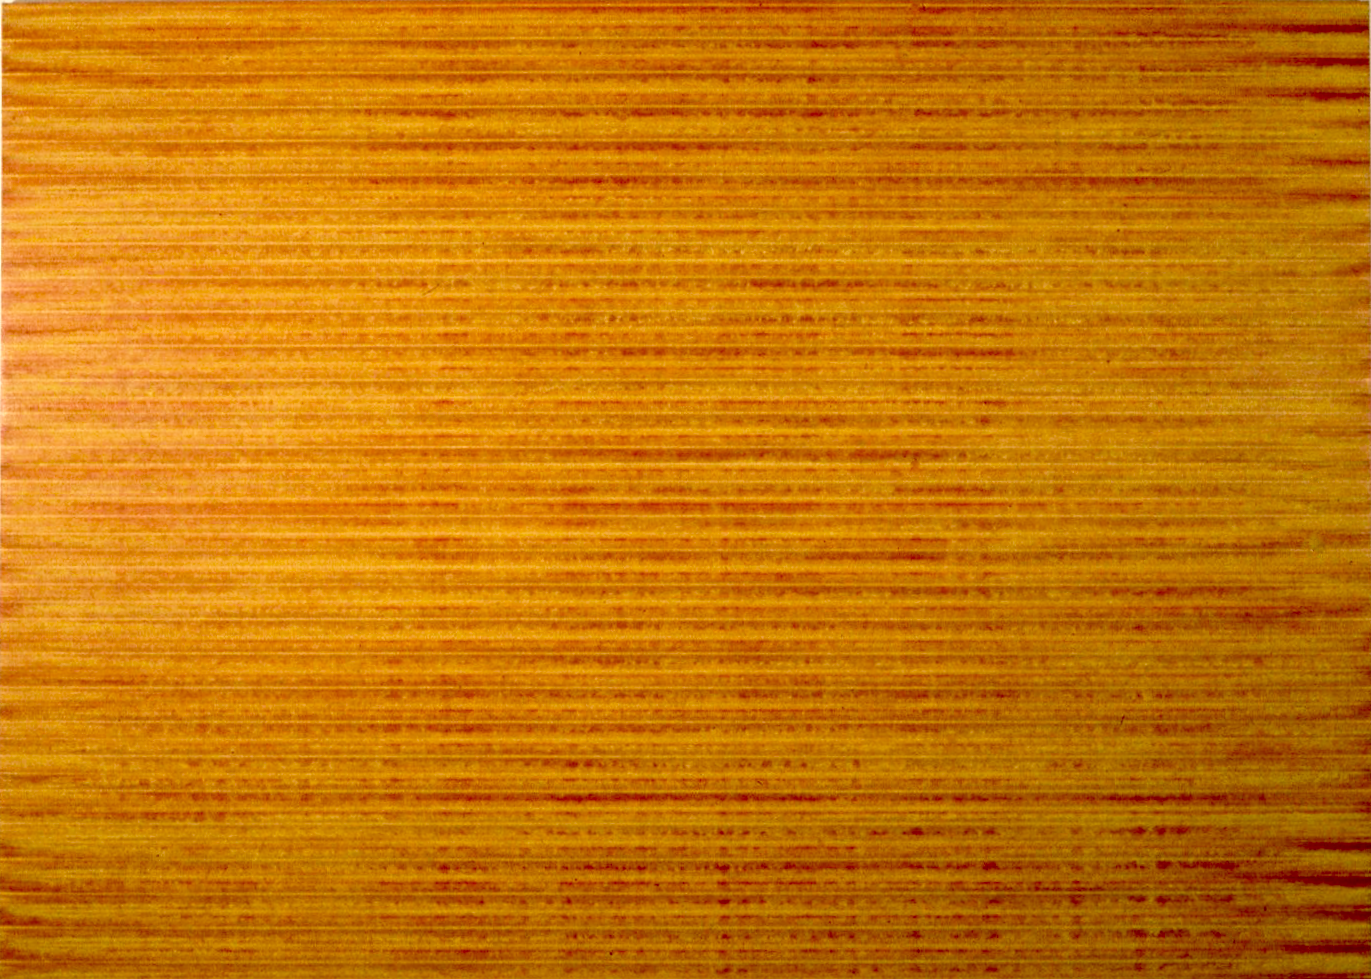 Untitled (Red & Yellow)